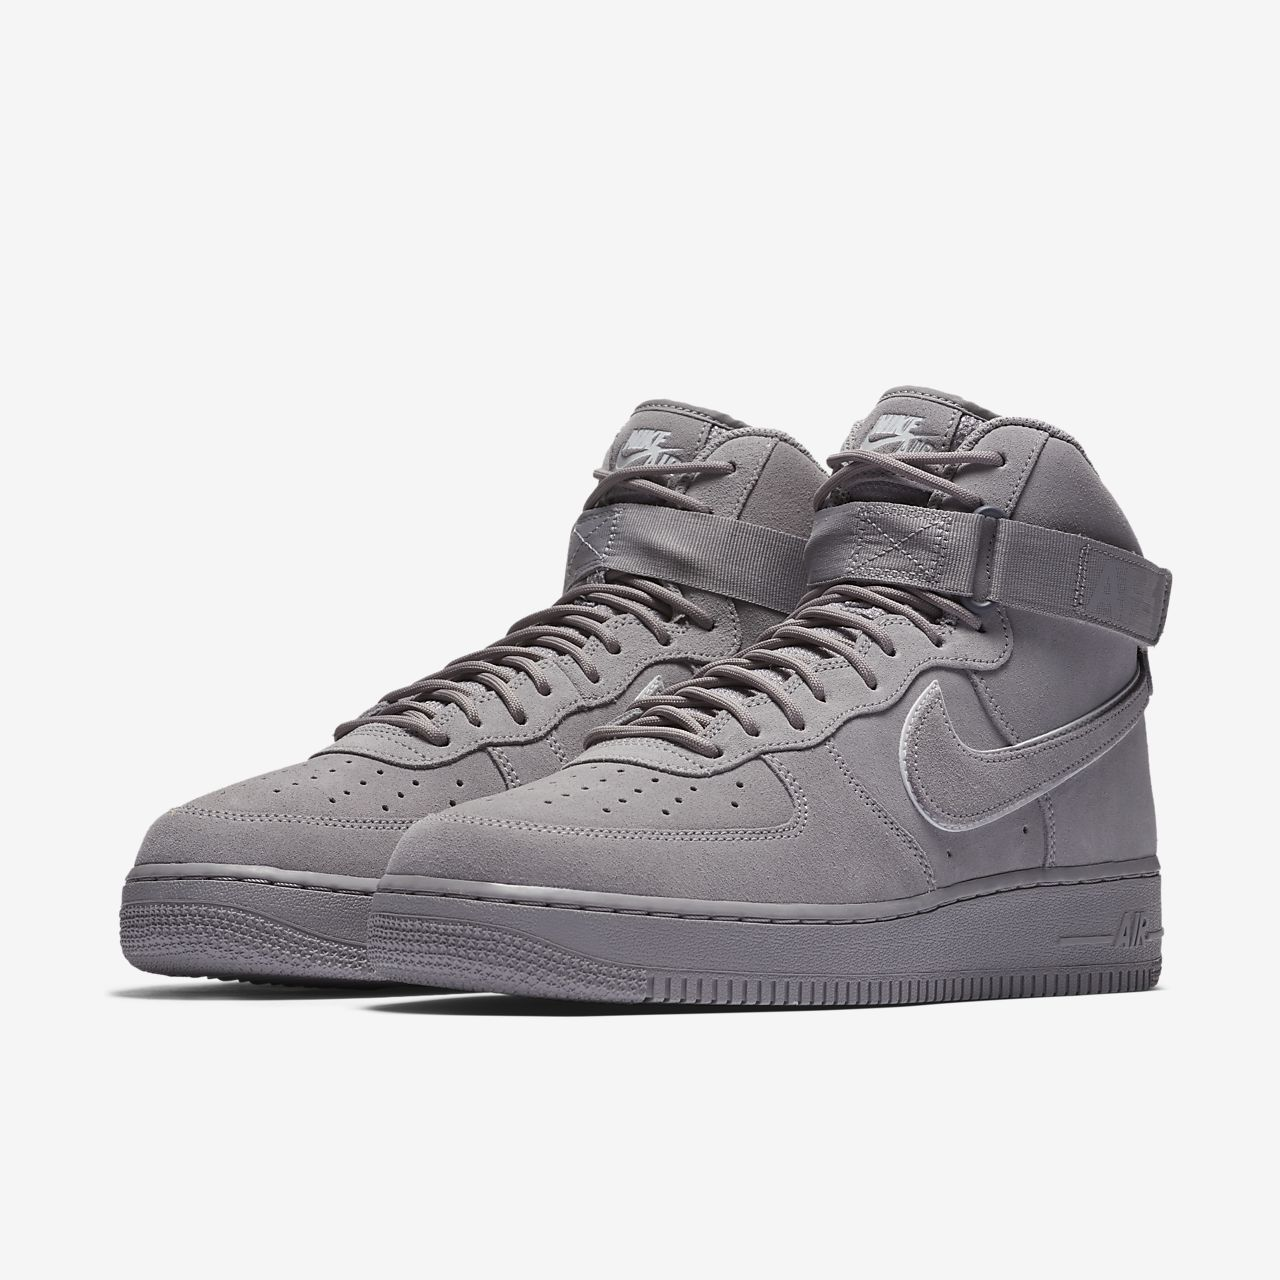 nike air force 1 high 39 07 lv8 suede men 39 s shoe. Black Bedroom Furniture Sets. Home Design Ideas